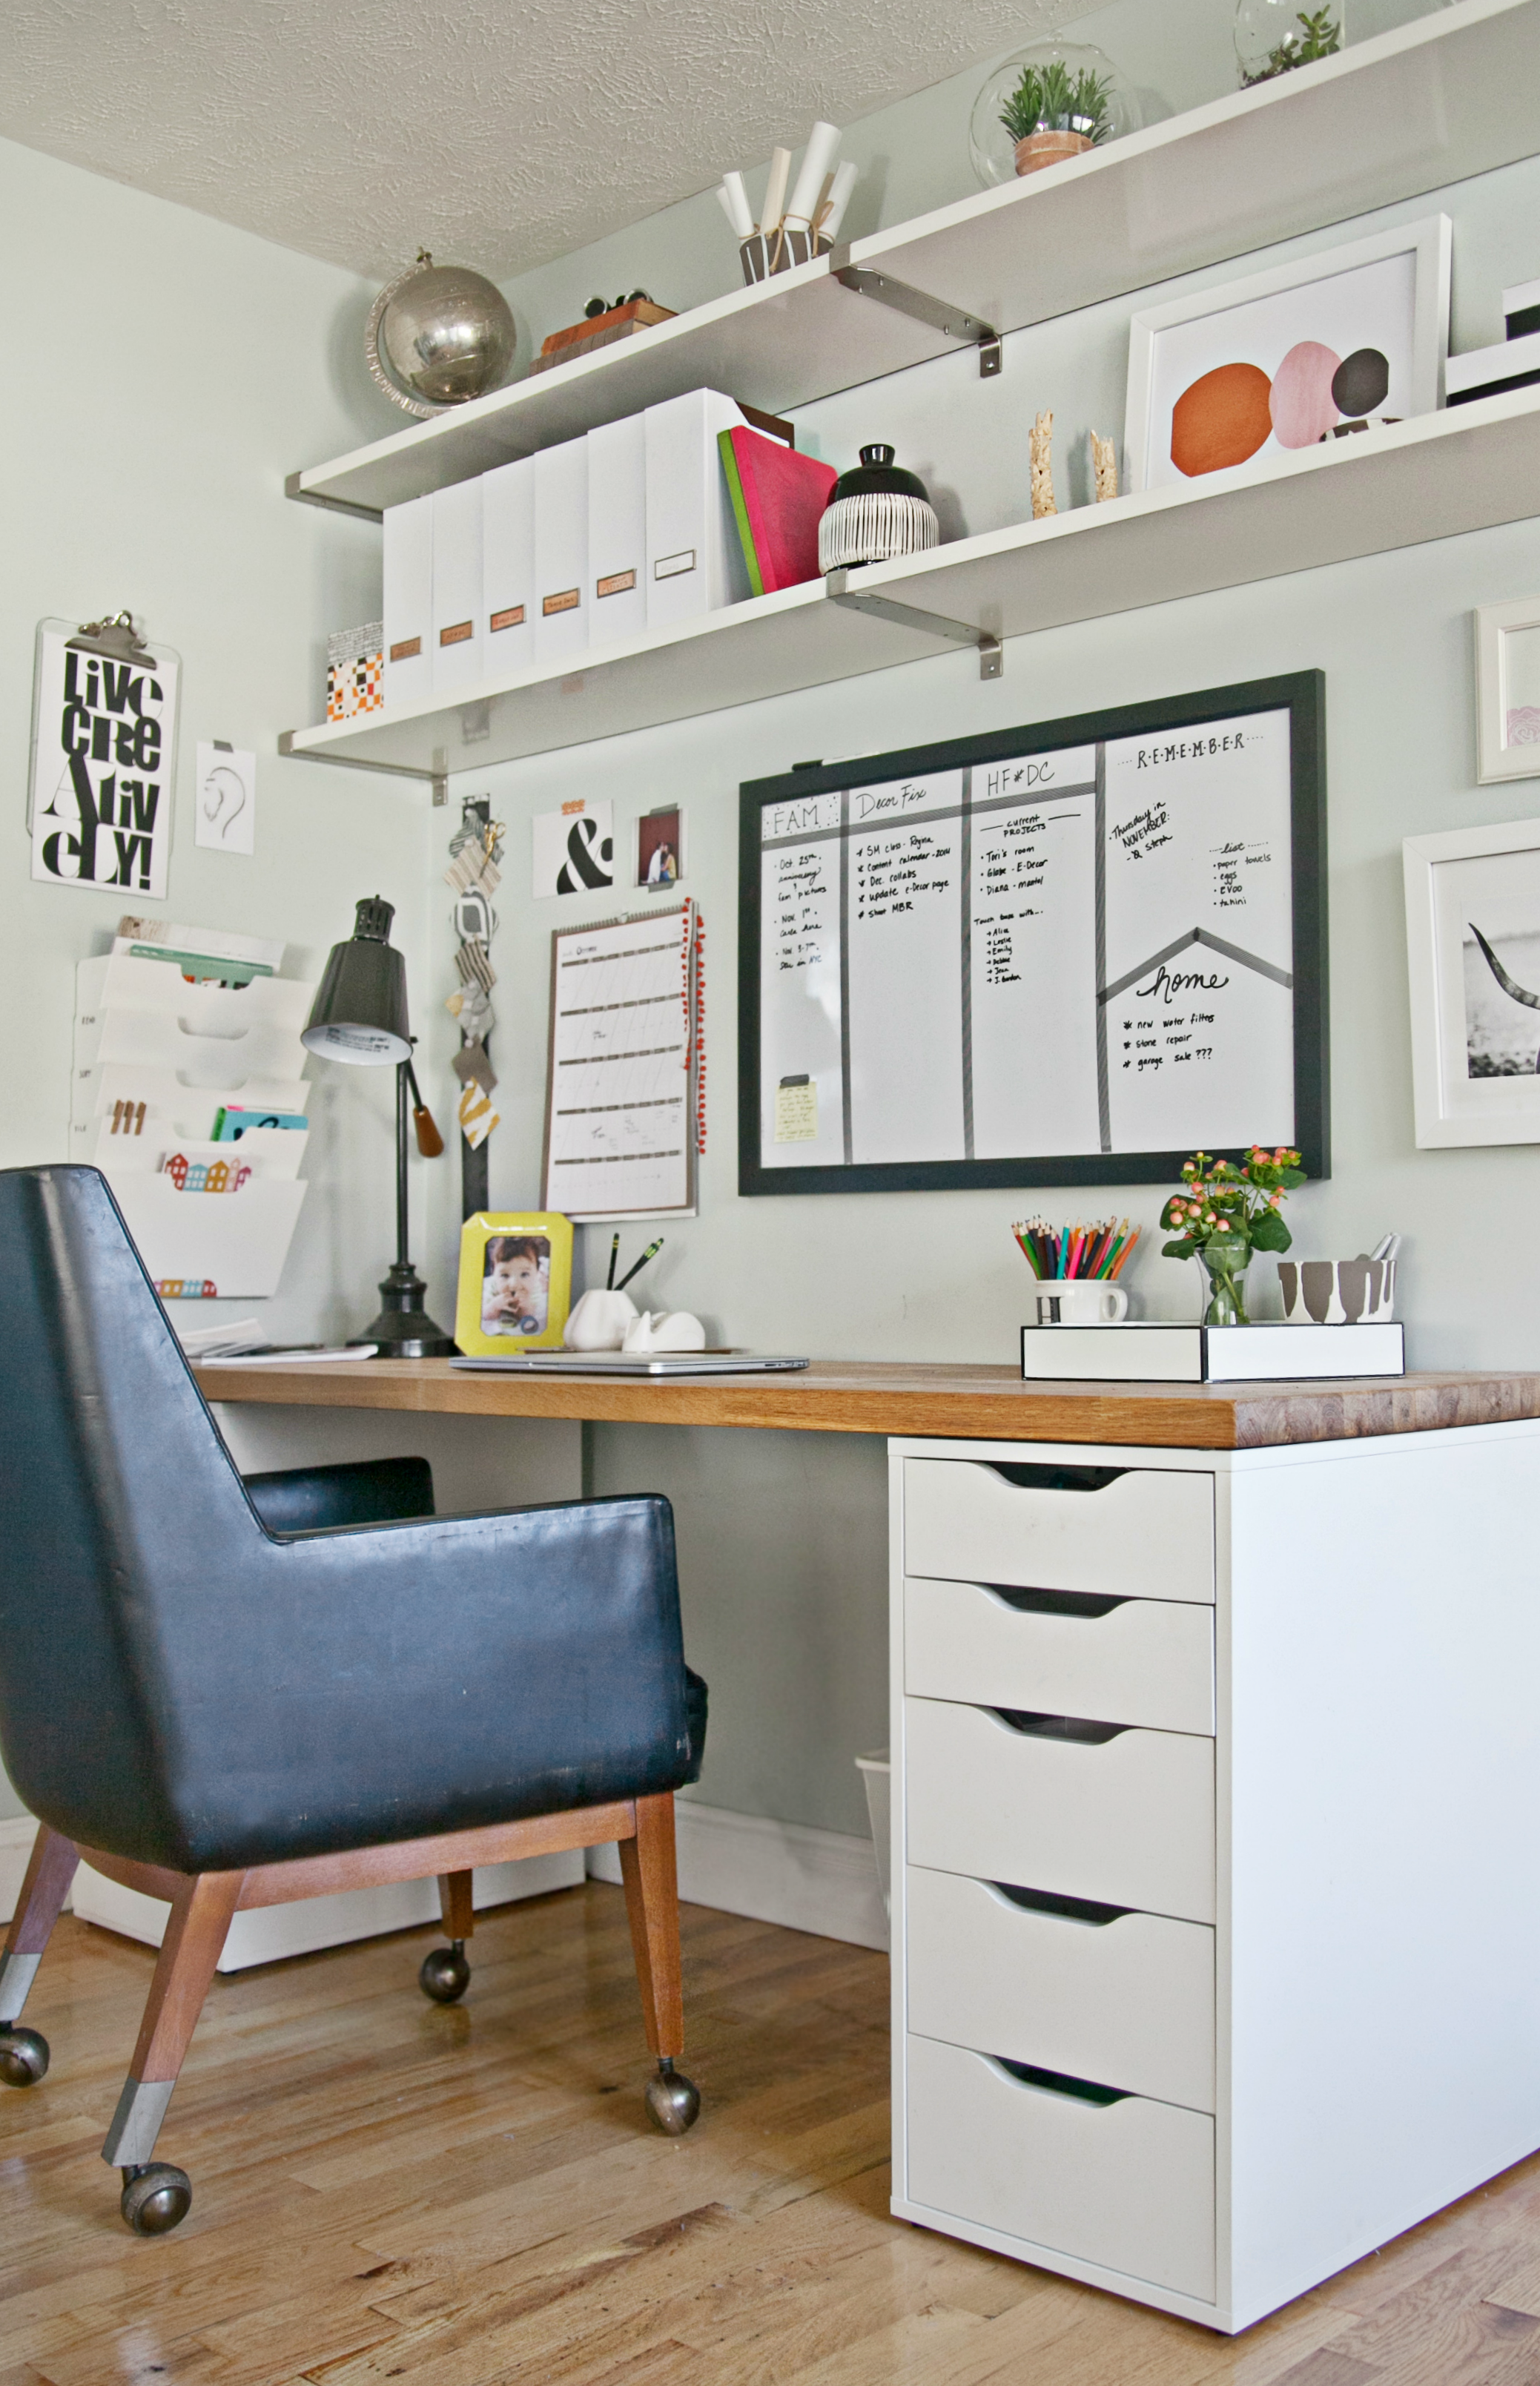 Ordinaire 9 Steps To A More Organized Office | Decor Fix #homeofficeShelves